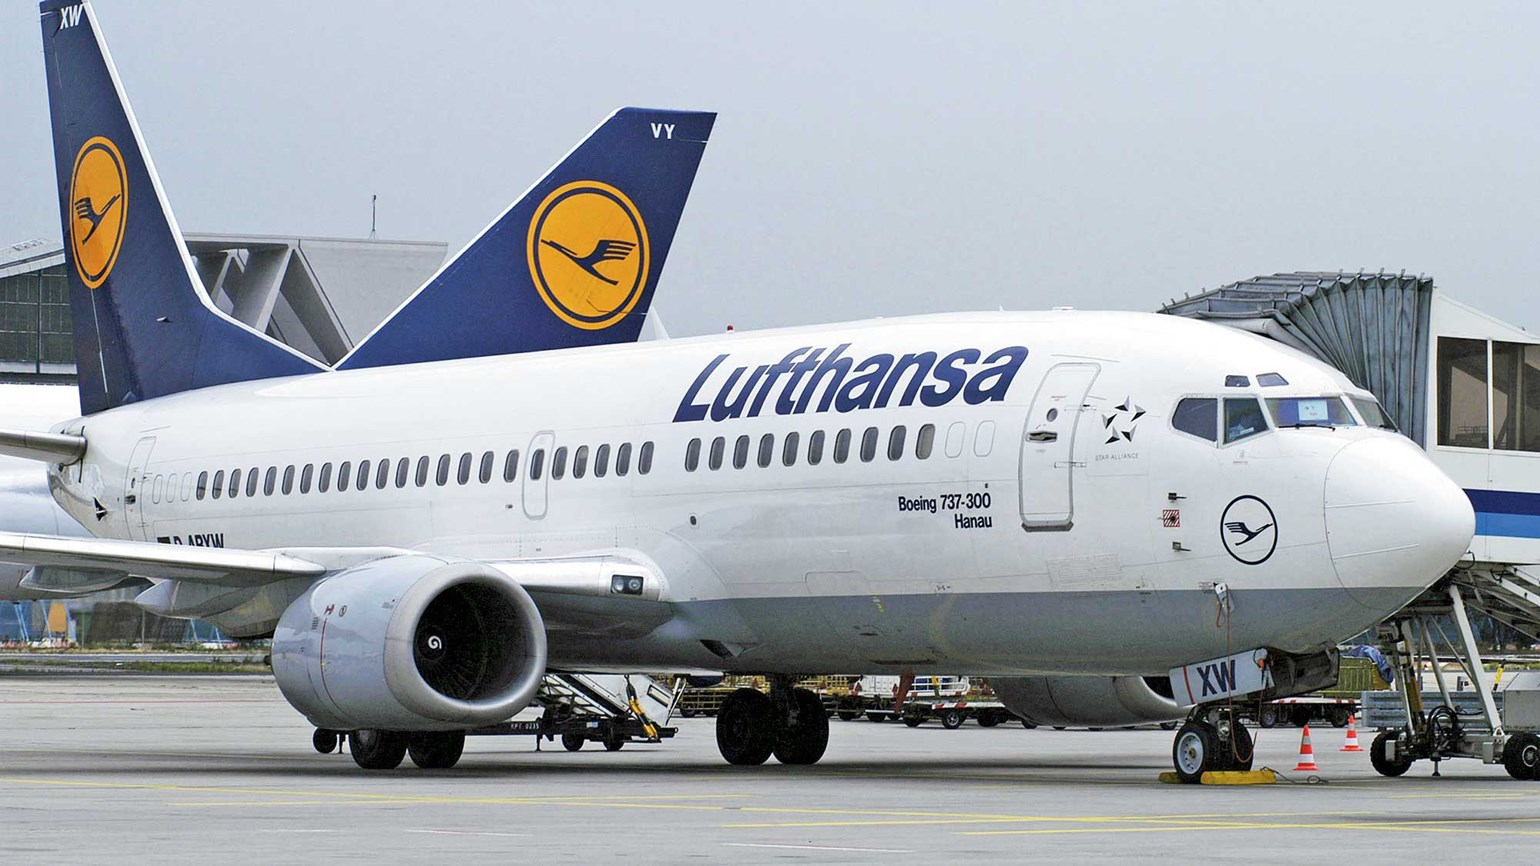 Agents concerned about Lufthansa's GDS surcharge